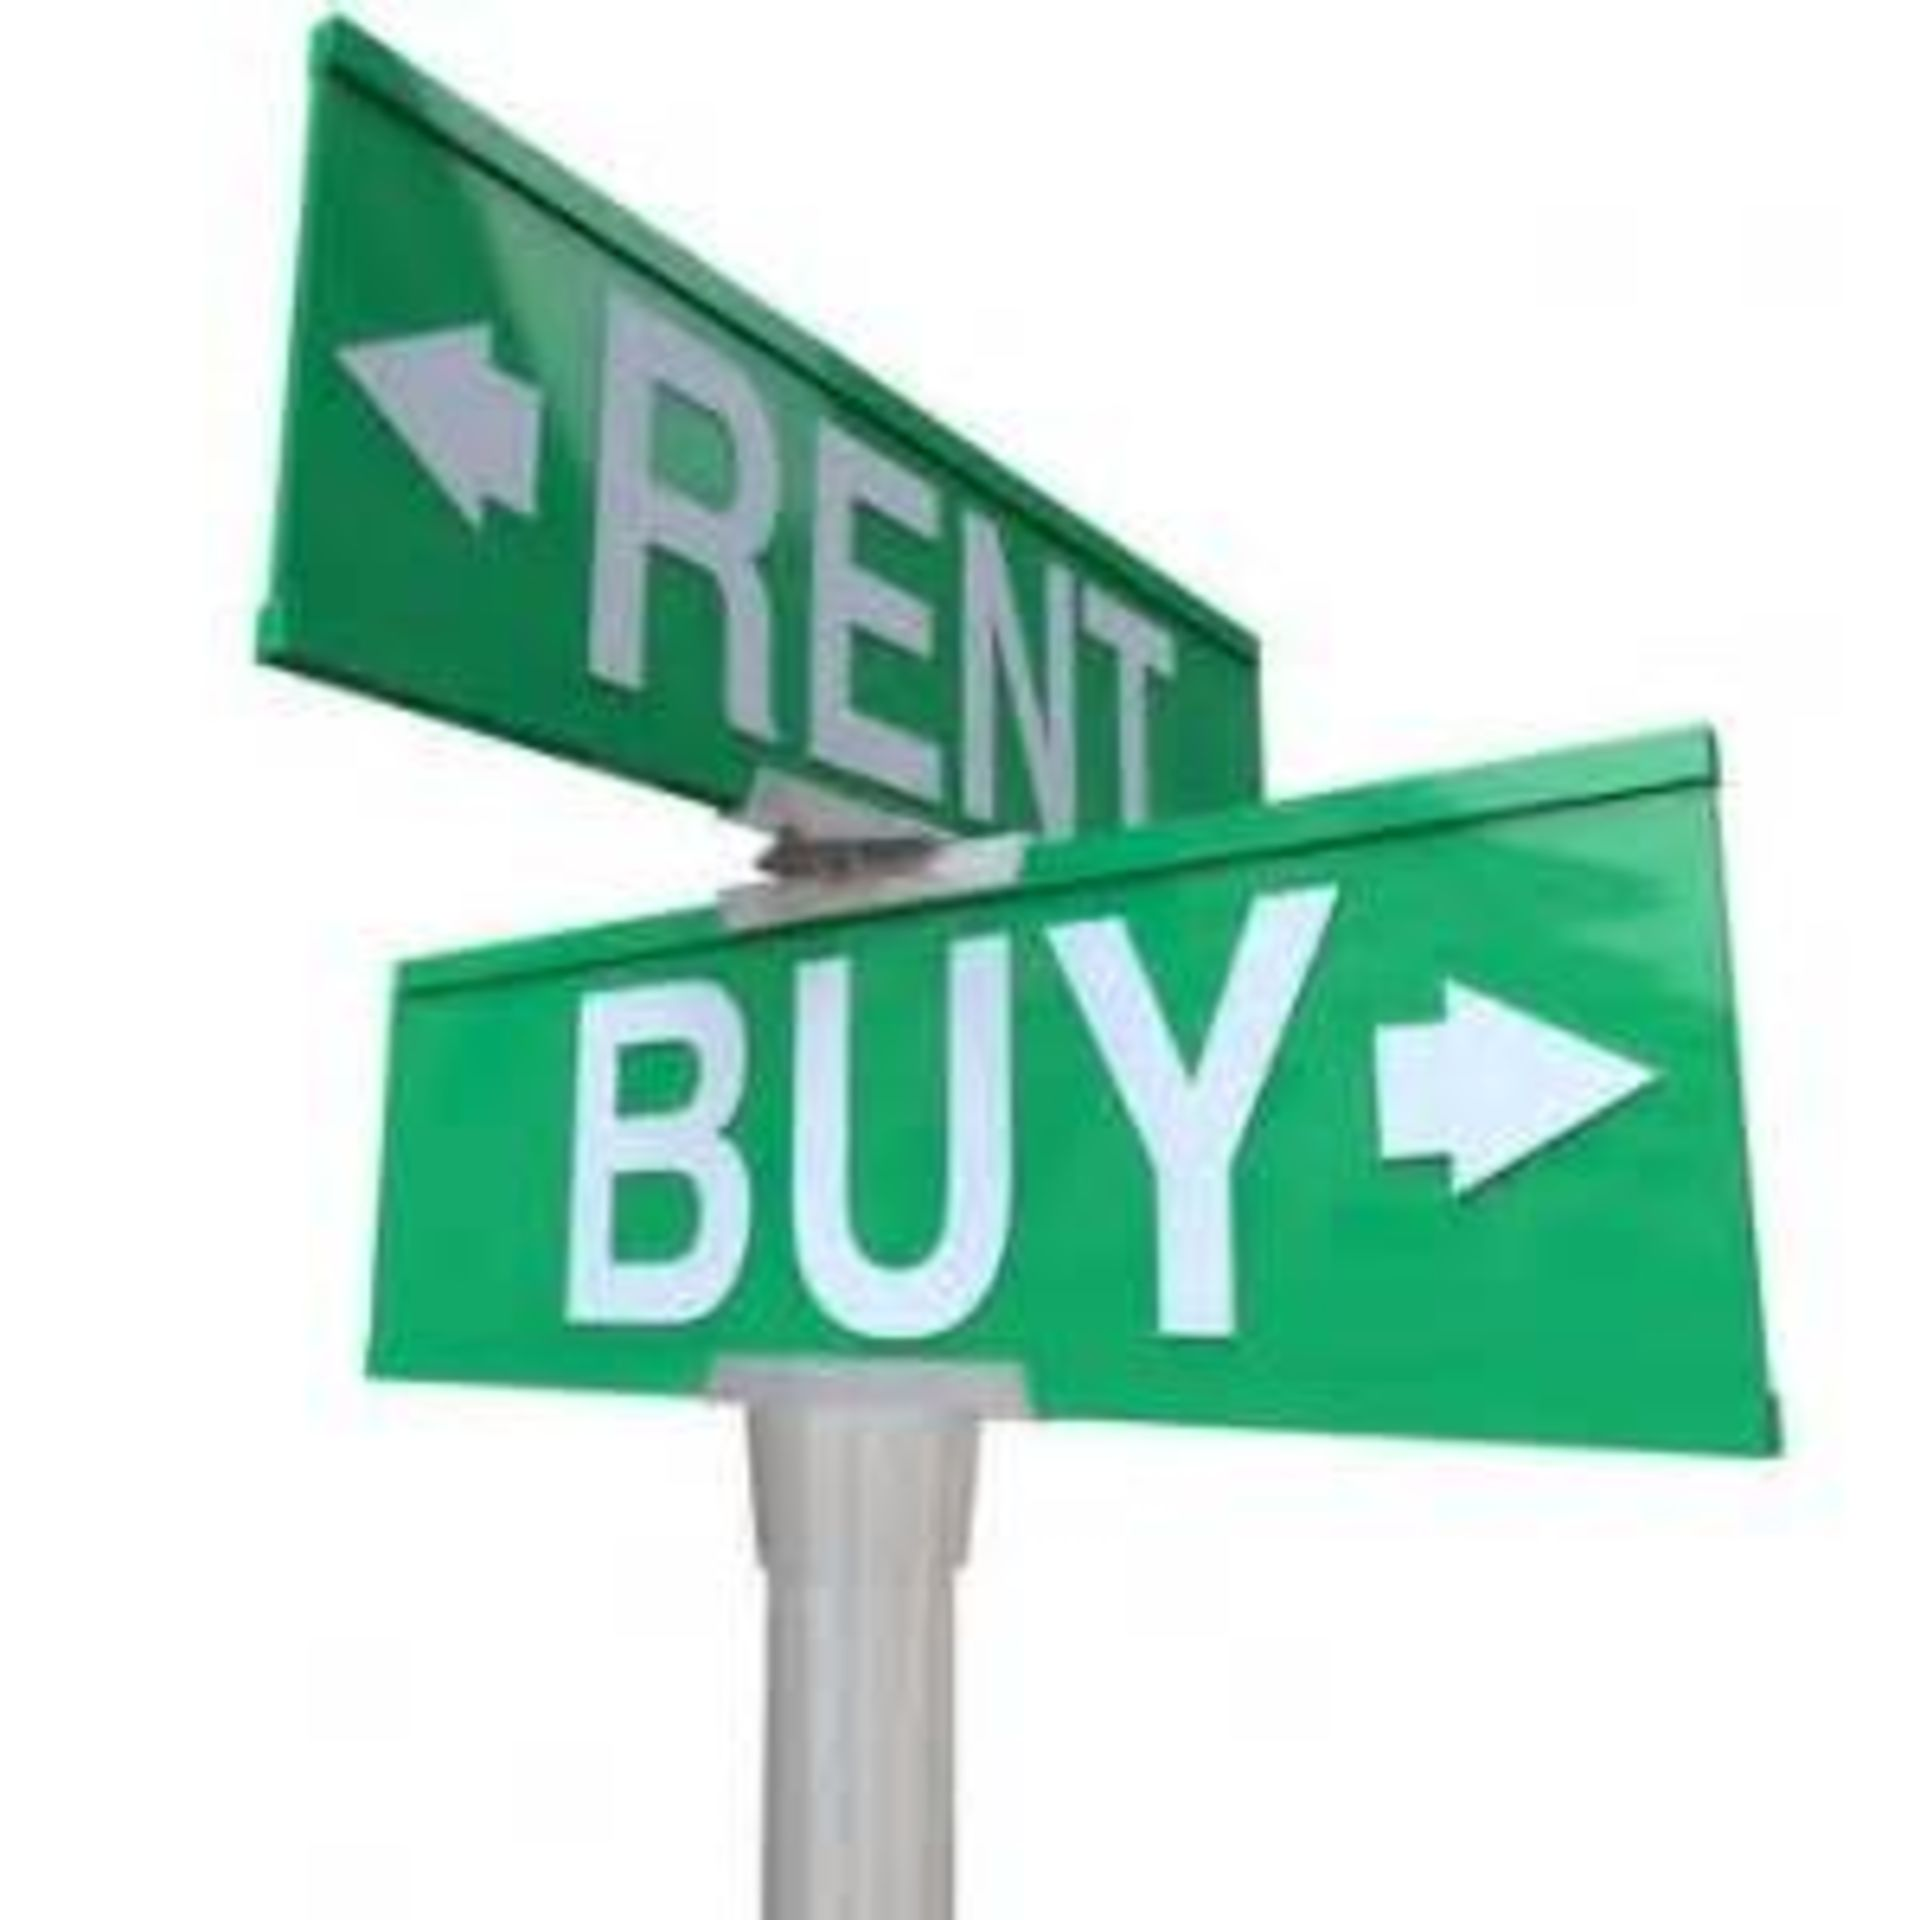 Buyers, Why You Should Buy, Not Rent